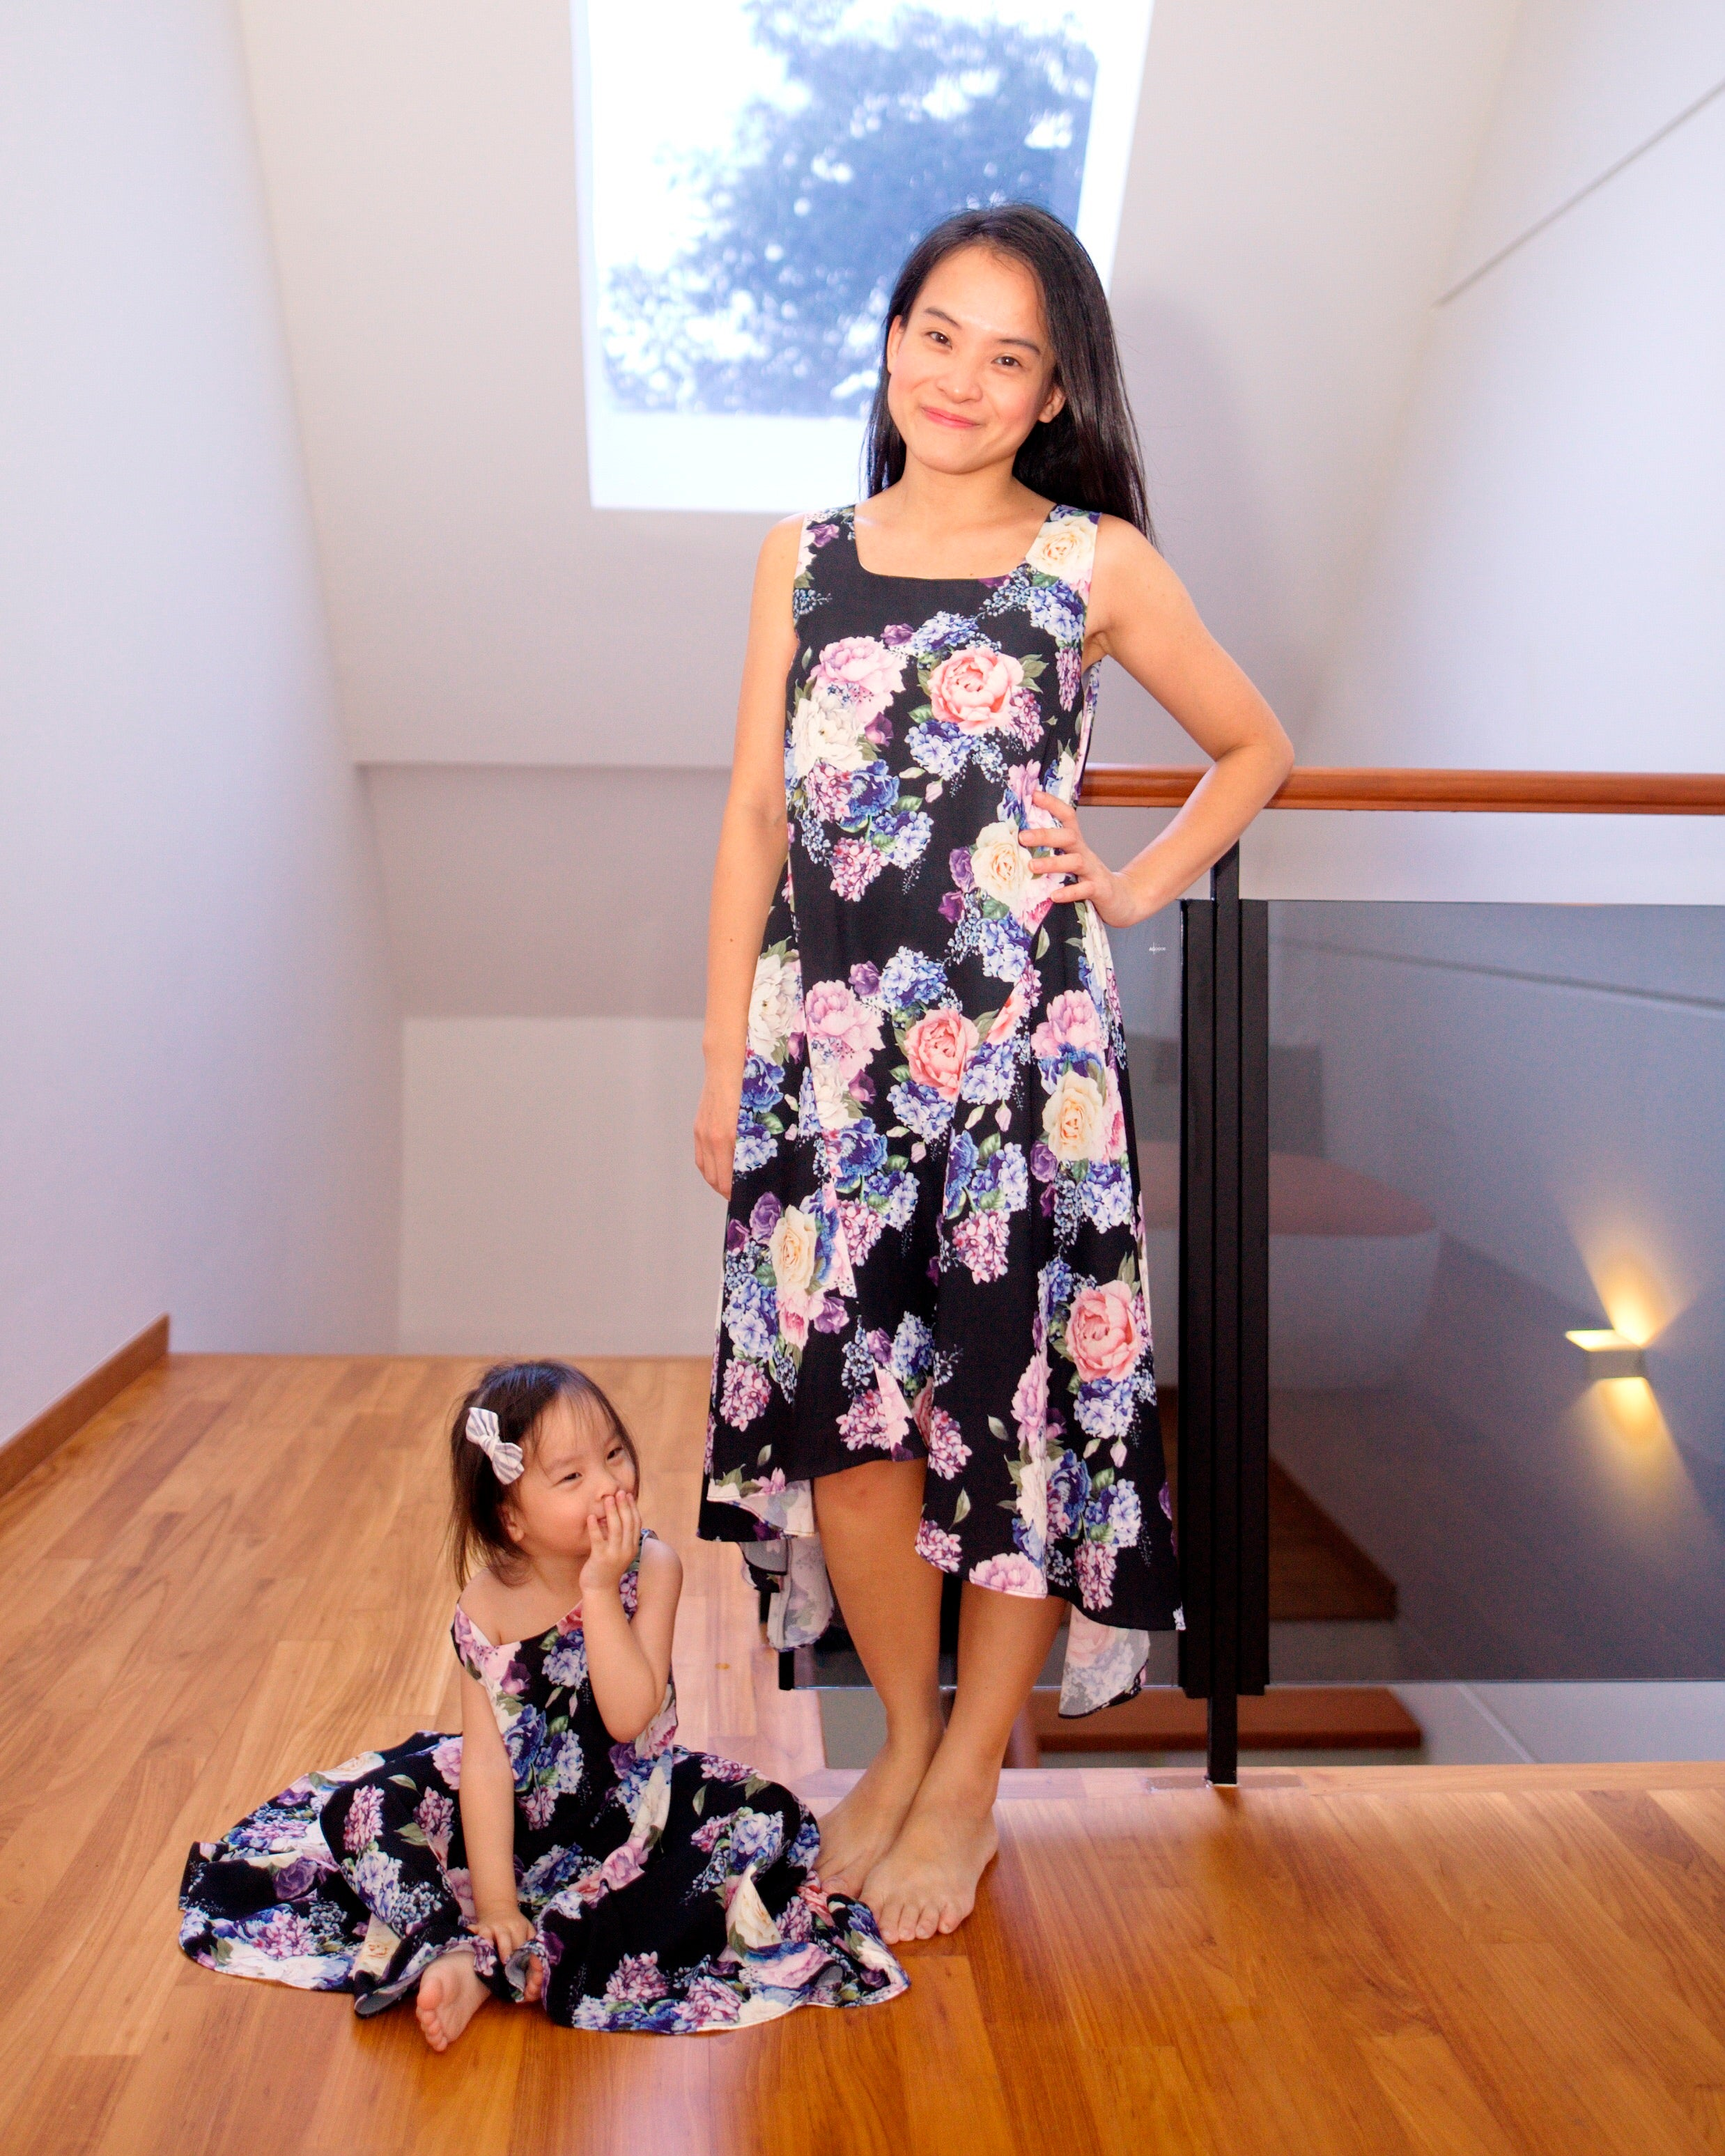 Shanice & Audria Dress Set - Mummy Shanice Dress